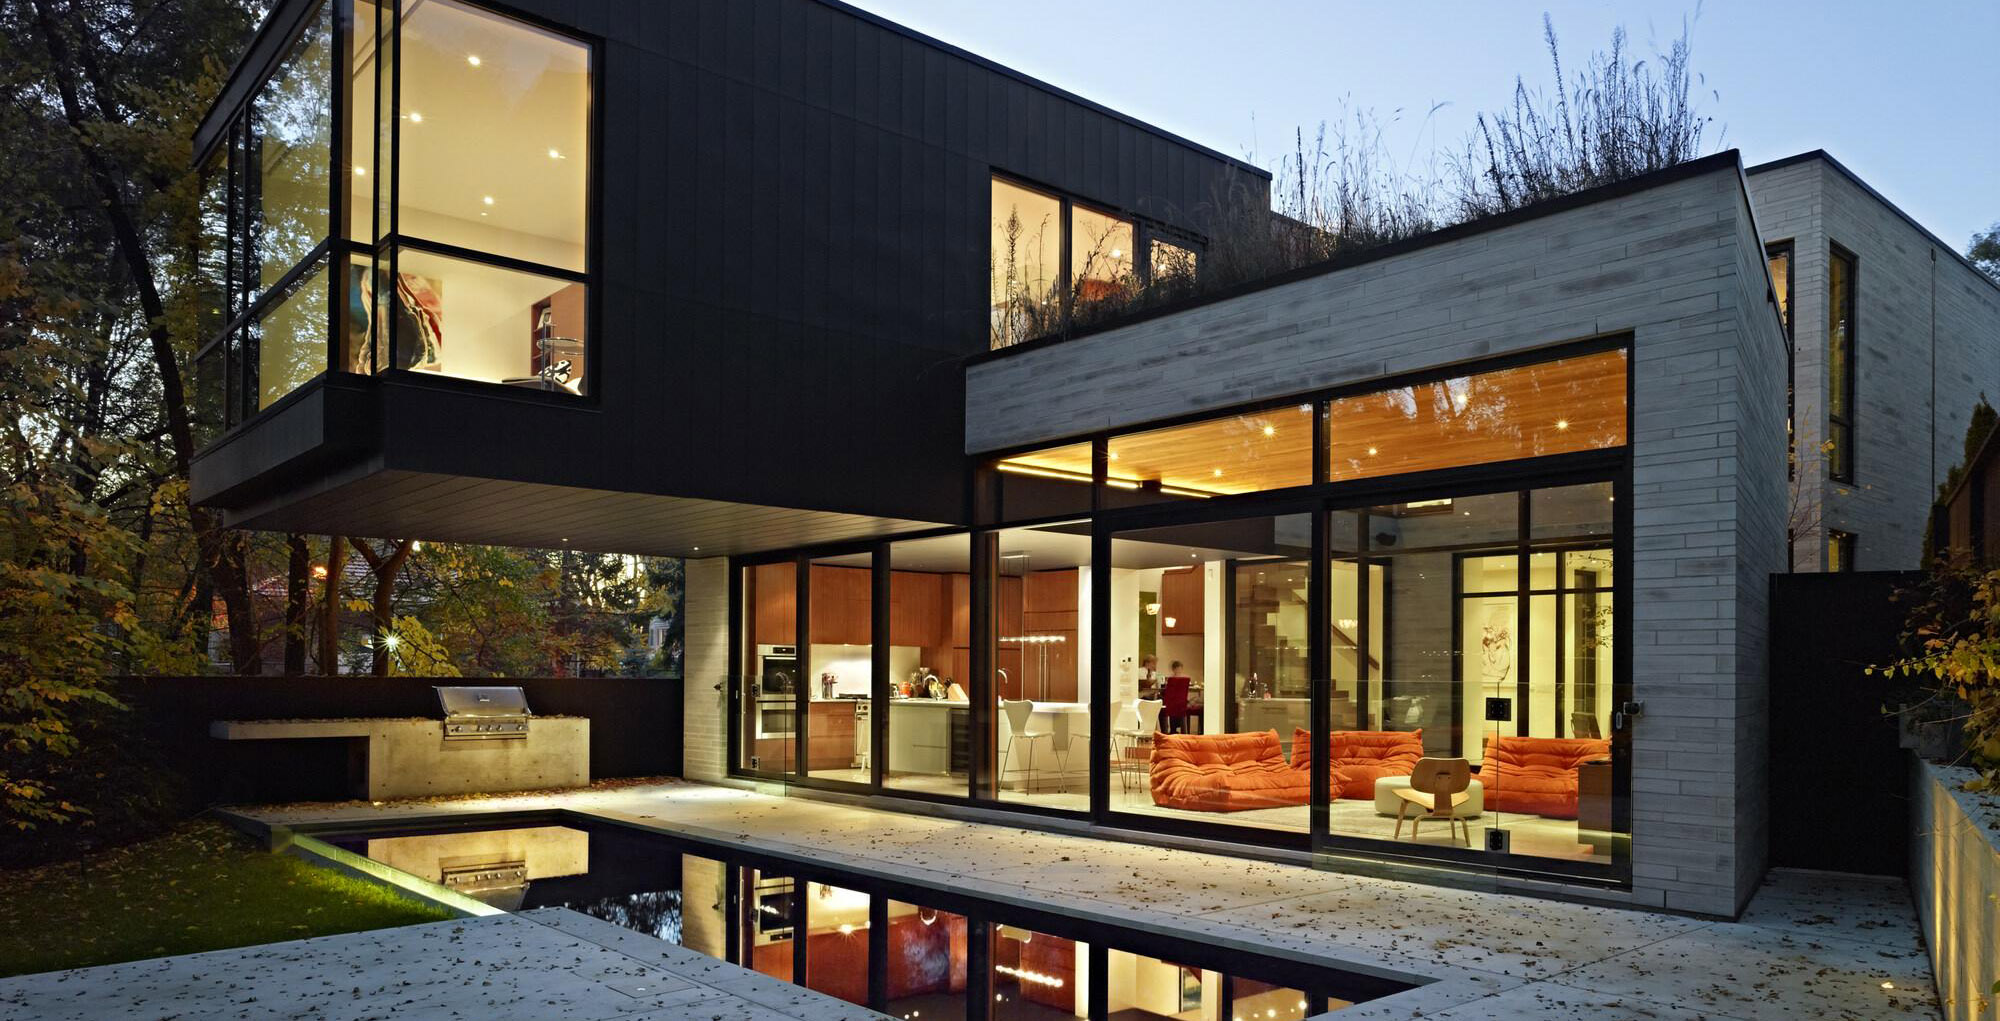 How to build a customized residence through some easy ways?